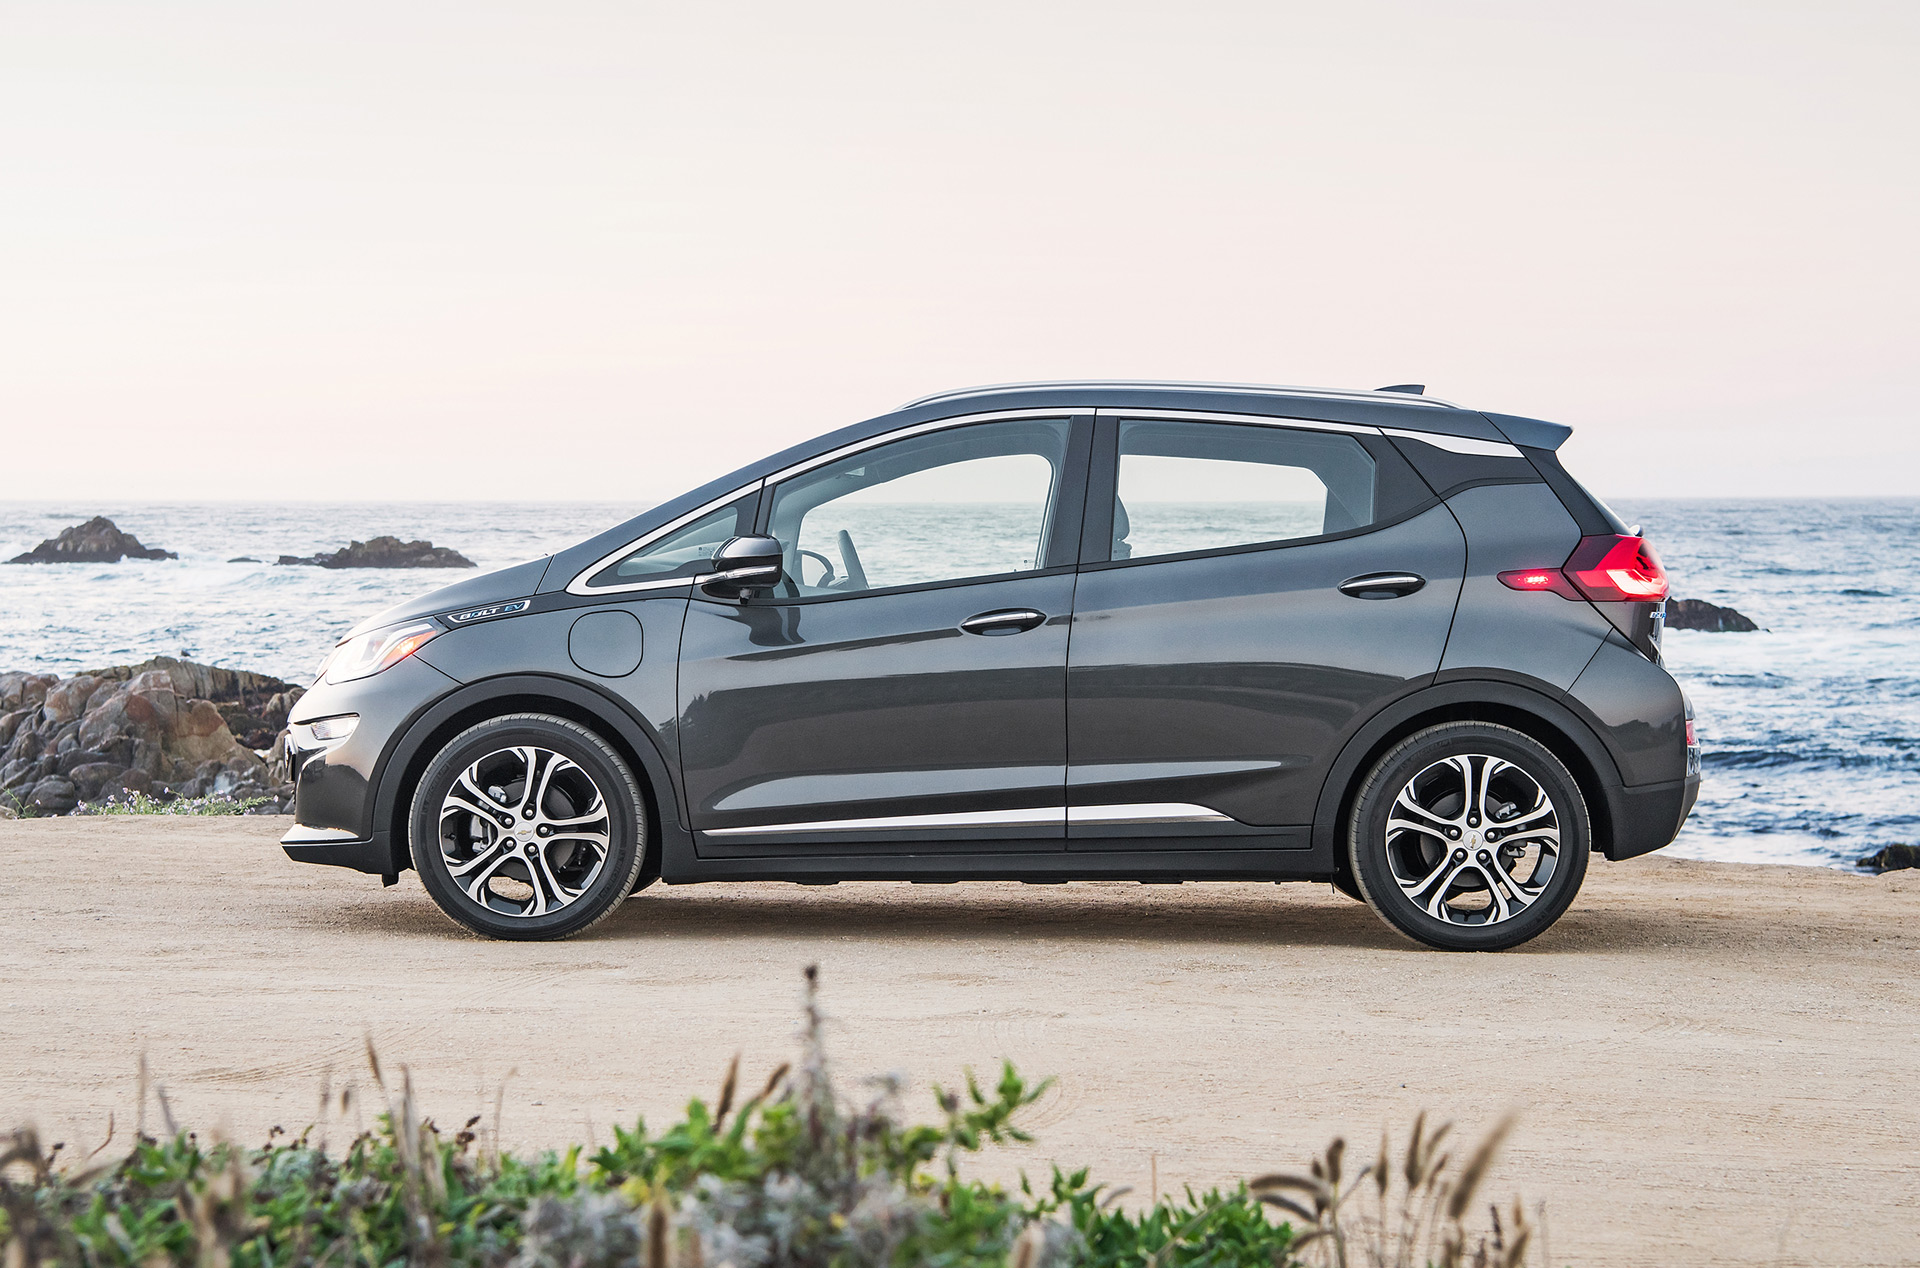 Chevy Bolt Ev Chrysler Pacifica Honda Ridgeline Take